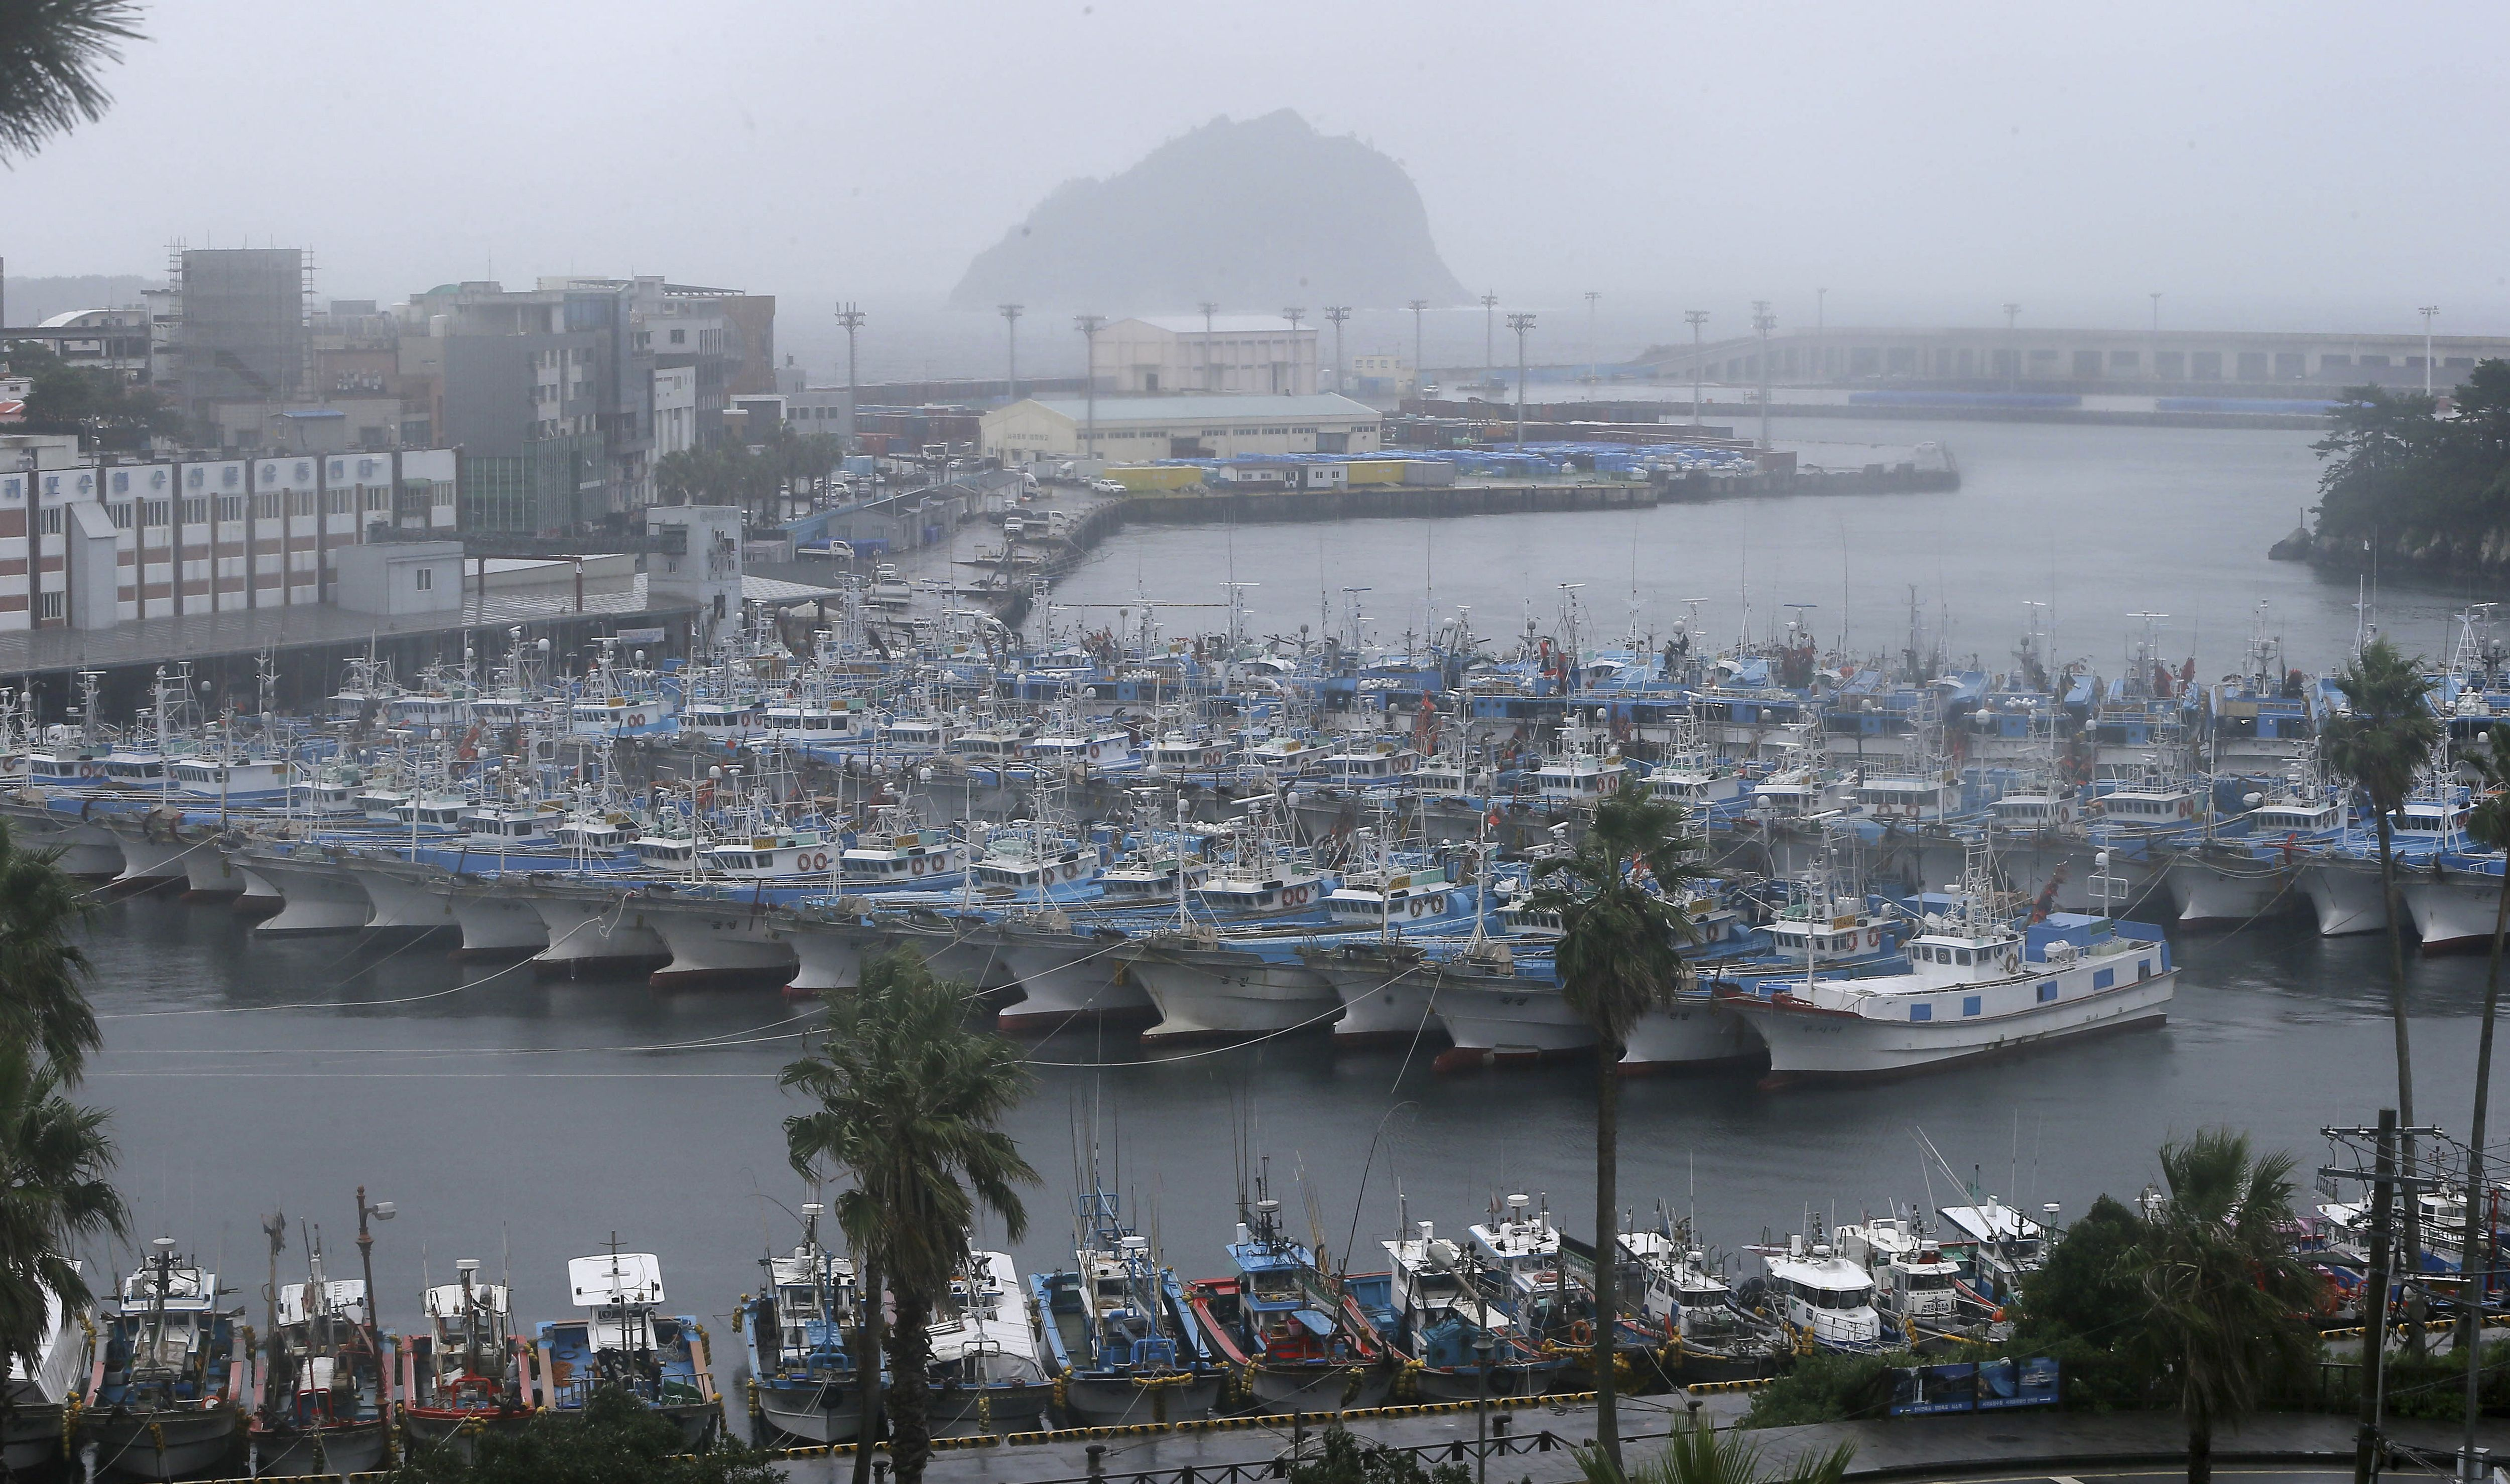 Korean Peninsula awaits typhoon